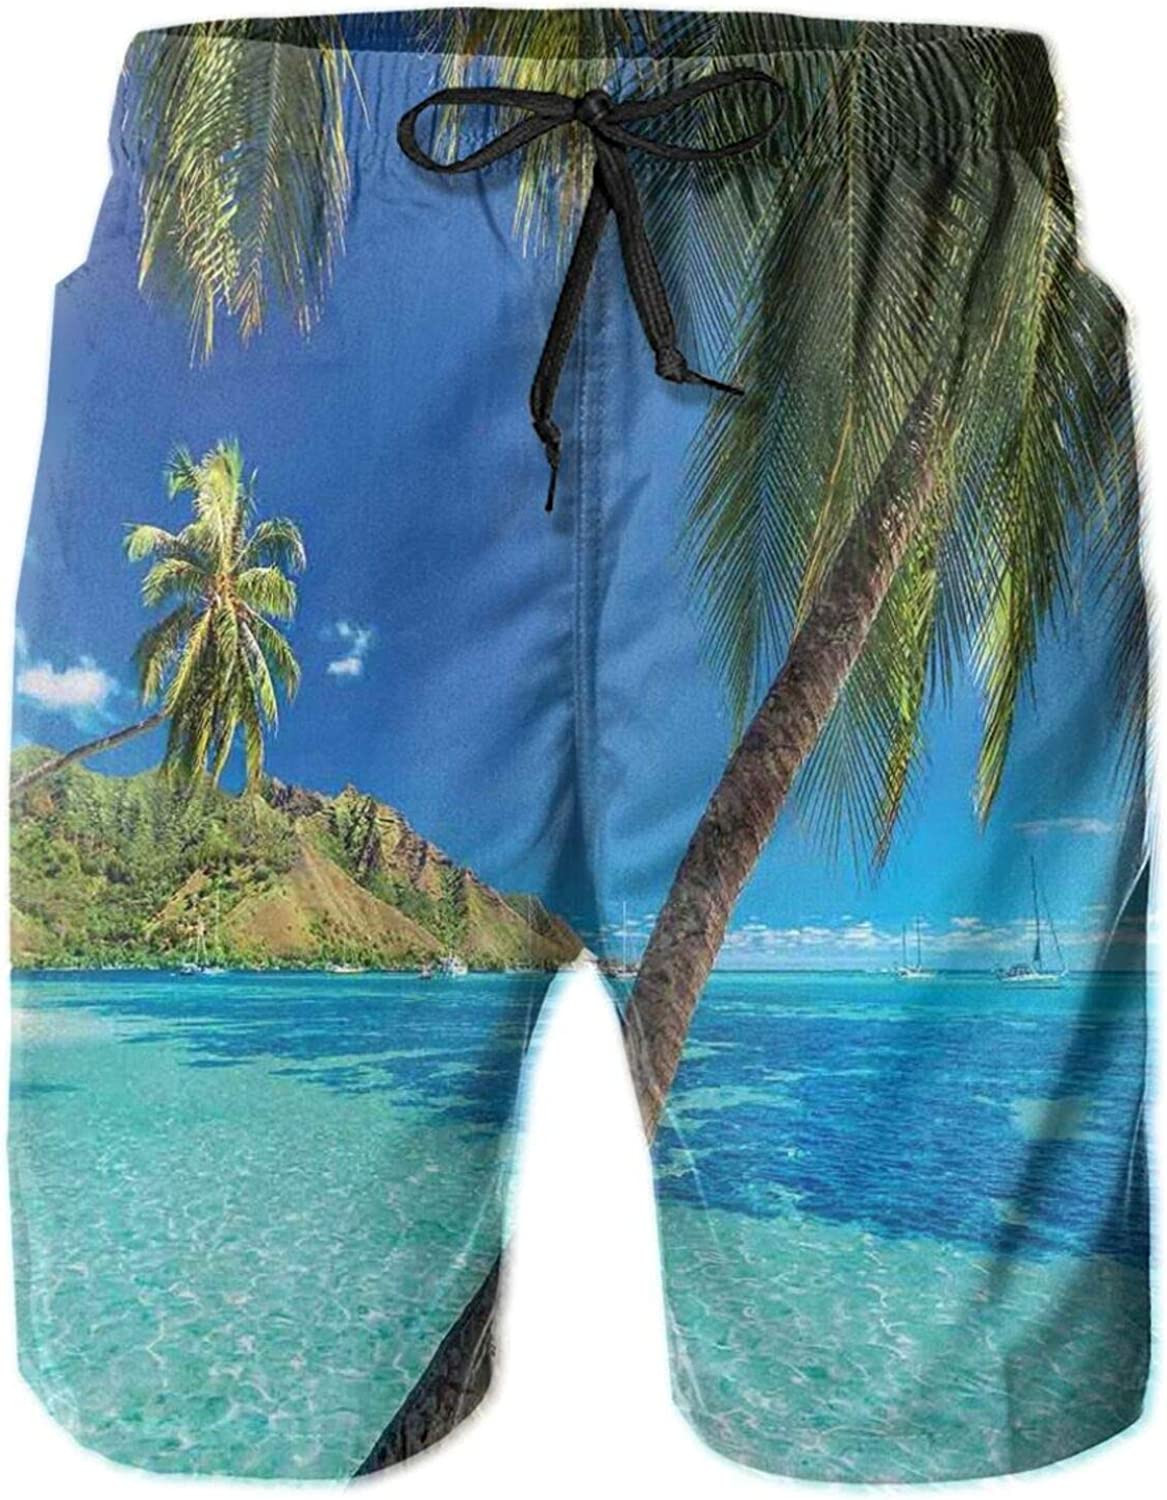 Image of A Tropical Island with The Palm Trees and Clear Sea Beach Nature Theme Print Swimming Trunks for Men Beach Shorts Casual Style,L